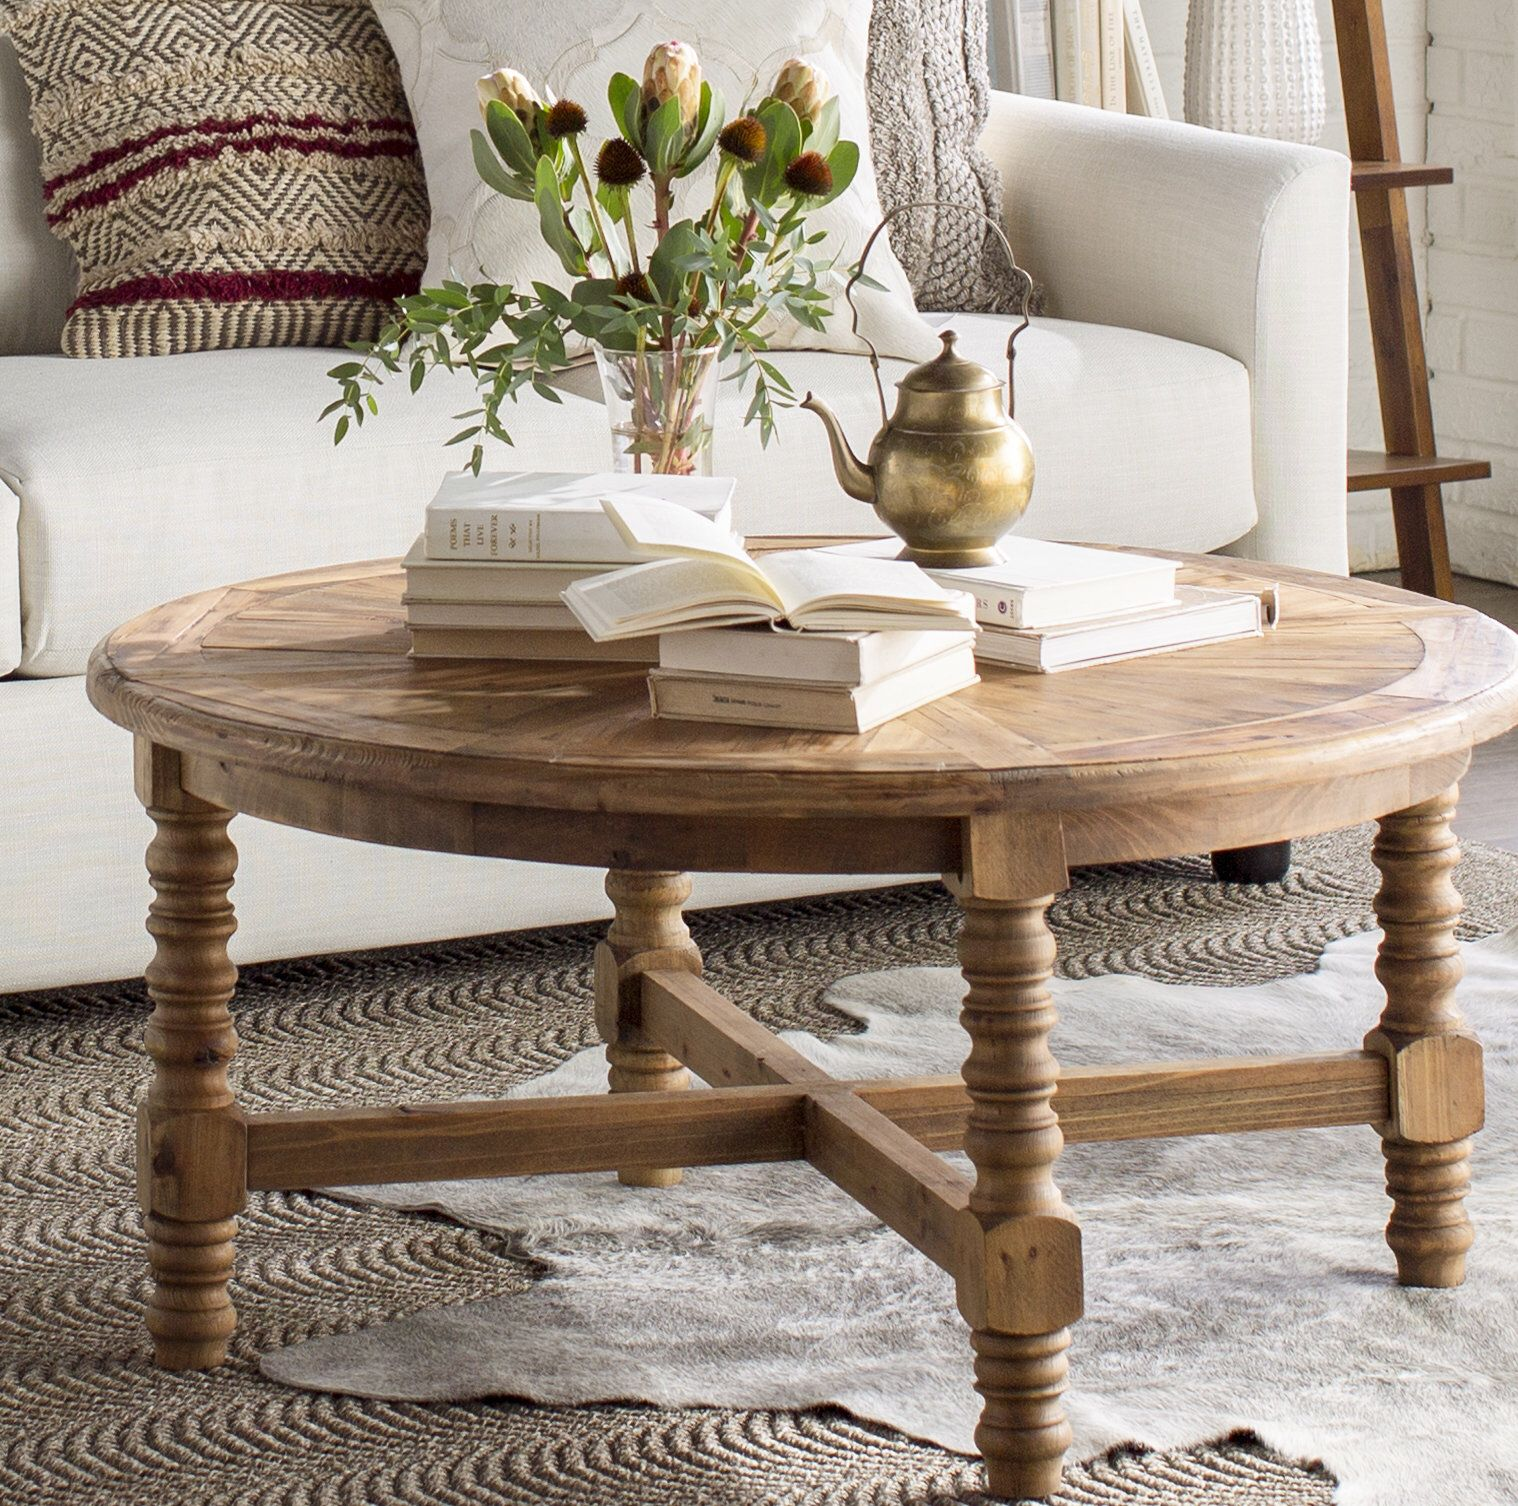 Haylie Wooden Coffee Table Coffee Table Coffee Table Farmhouse Coffee Table Wood [ 1506 x 1518 Pixel ]